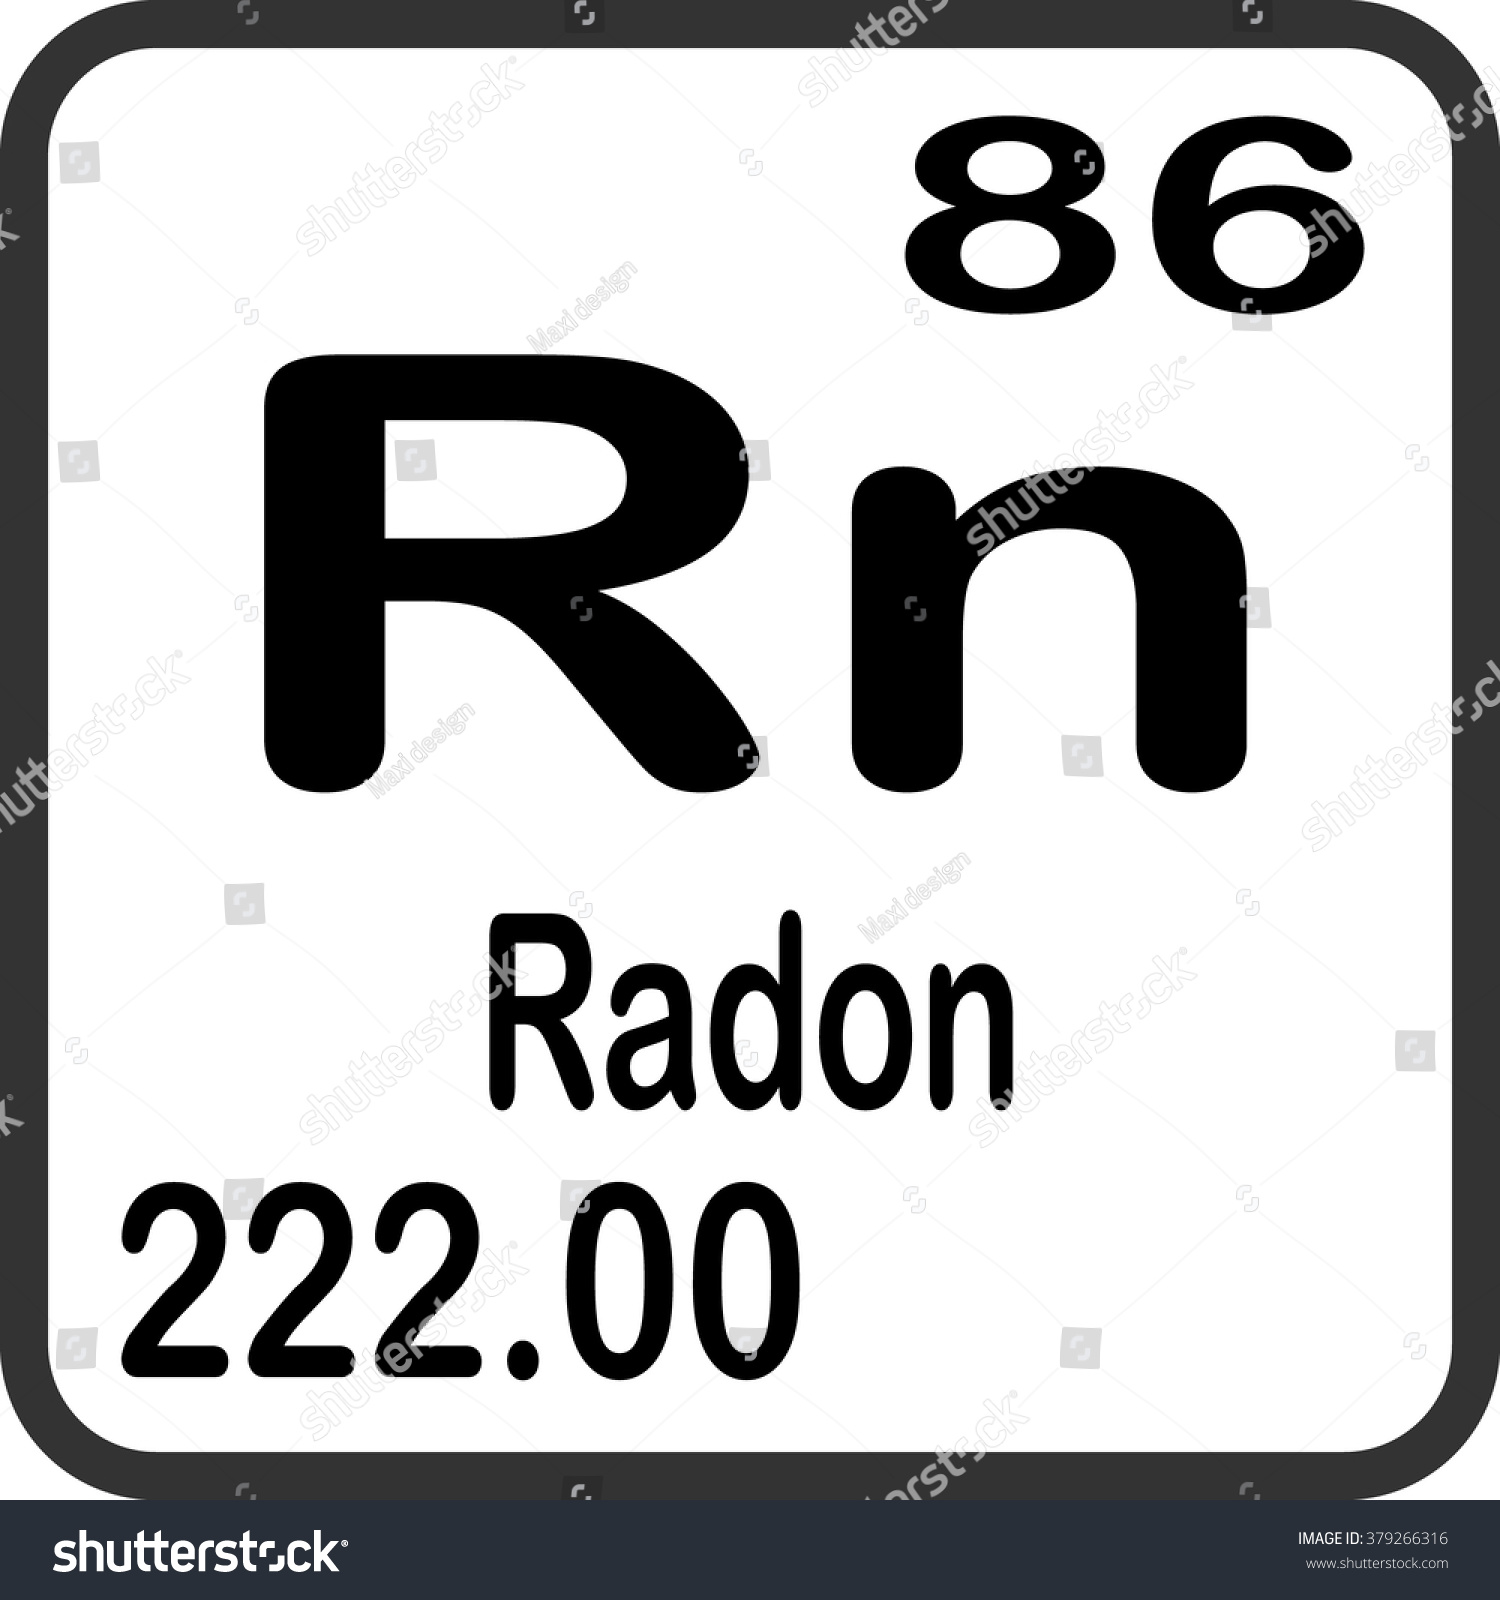 an analysis of the element radon Radon in quebec evaluation of the health risk and critical analysis of intervention strategies elements of such a strategy are: radon in quebec critical analysis of intervention.